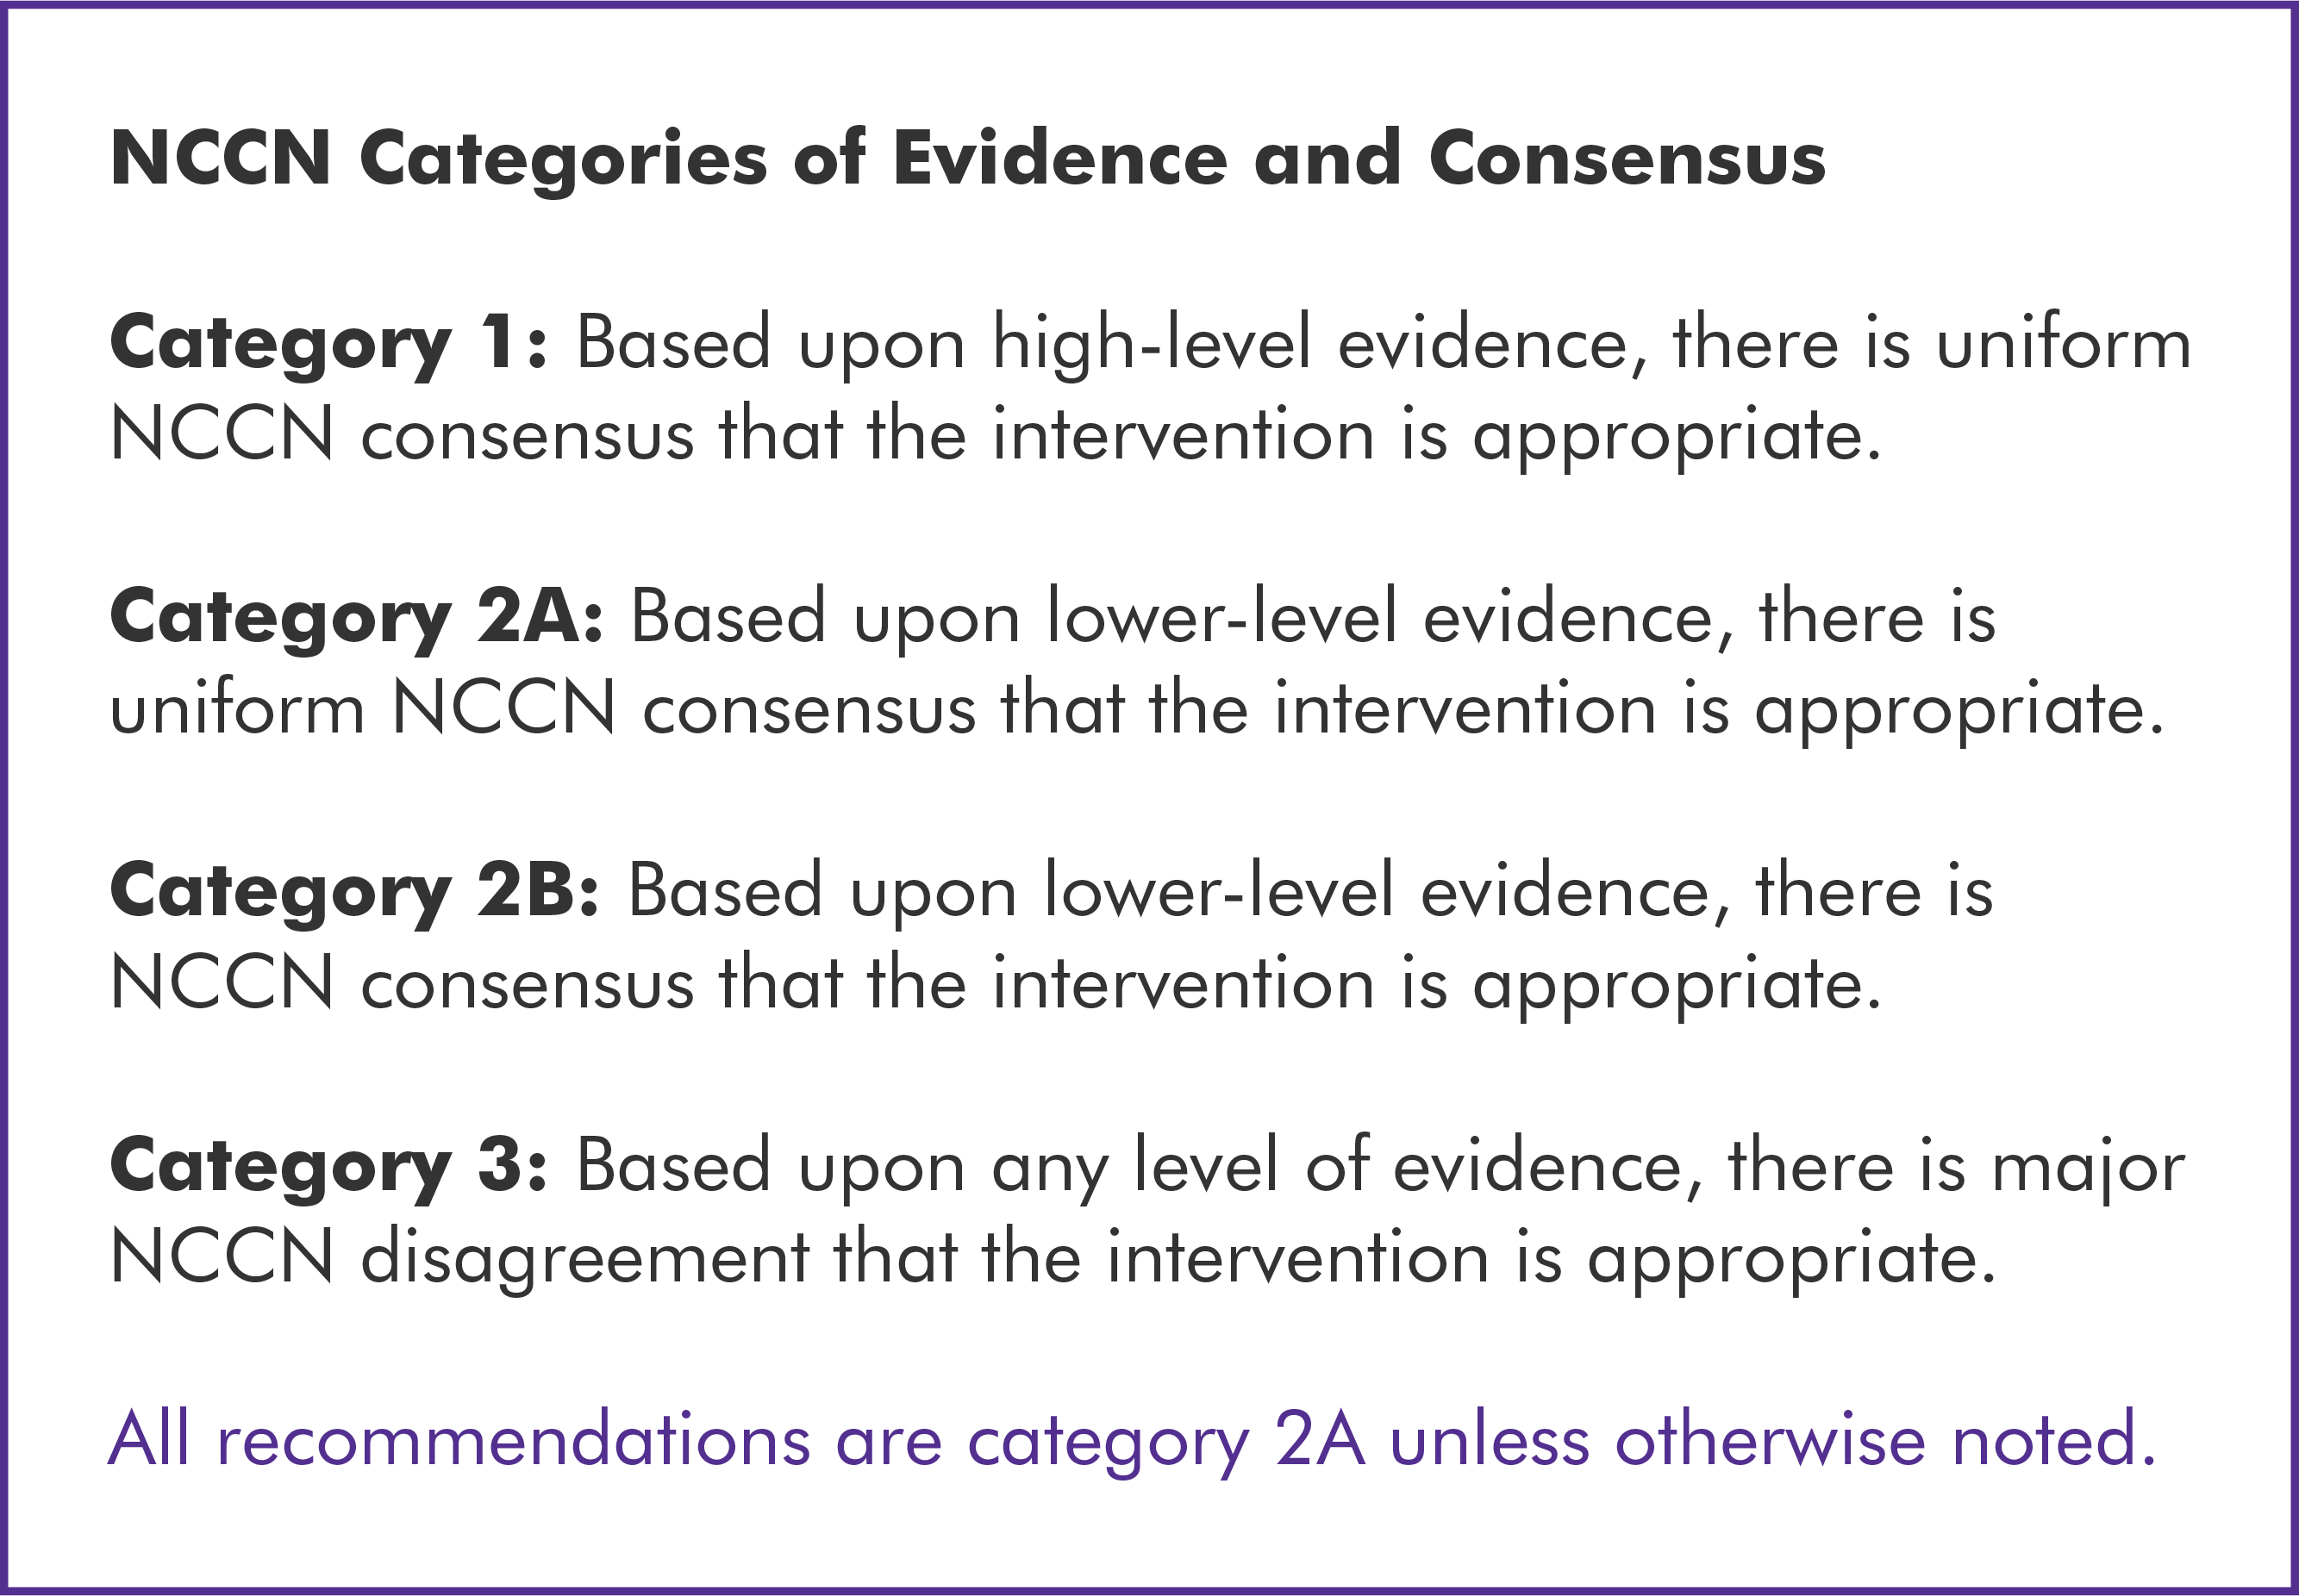 Listing of National Comprehensive Cancer Network Categories of Evidence and Consensus